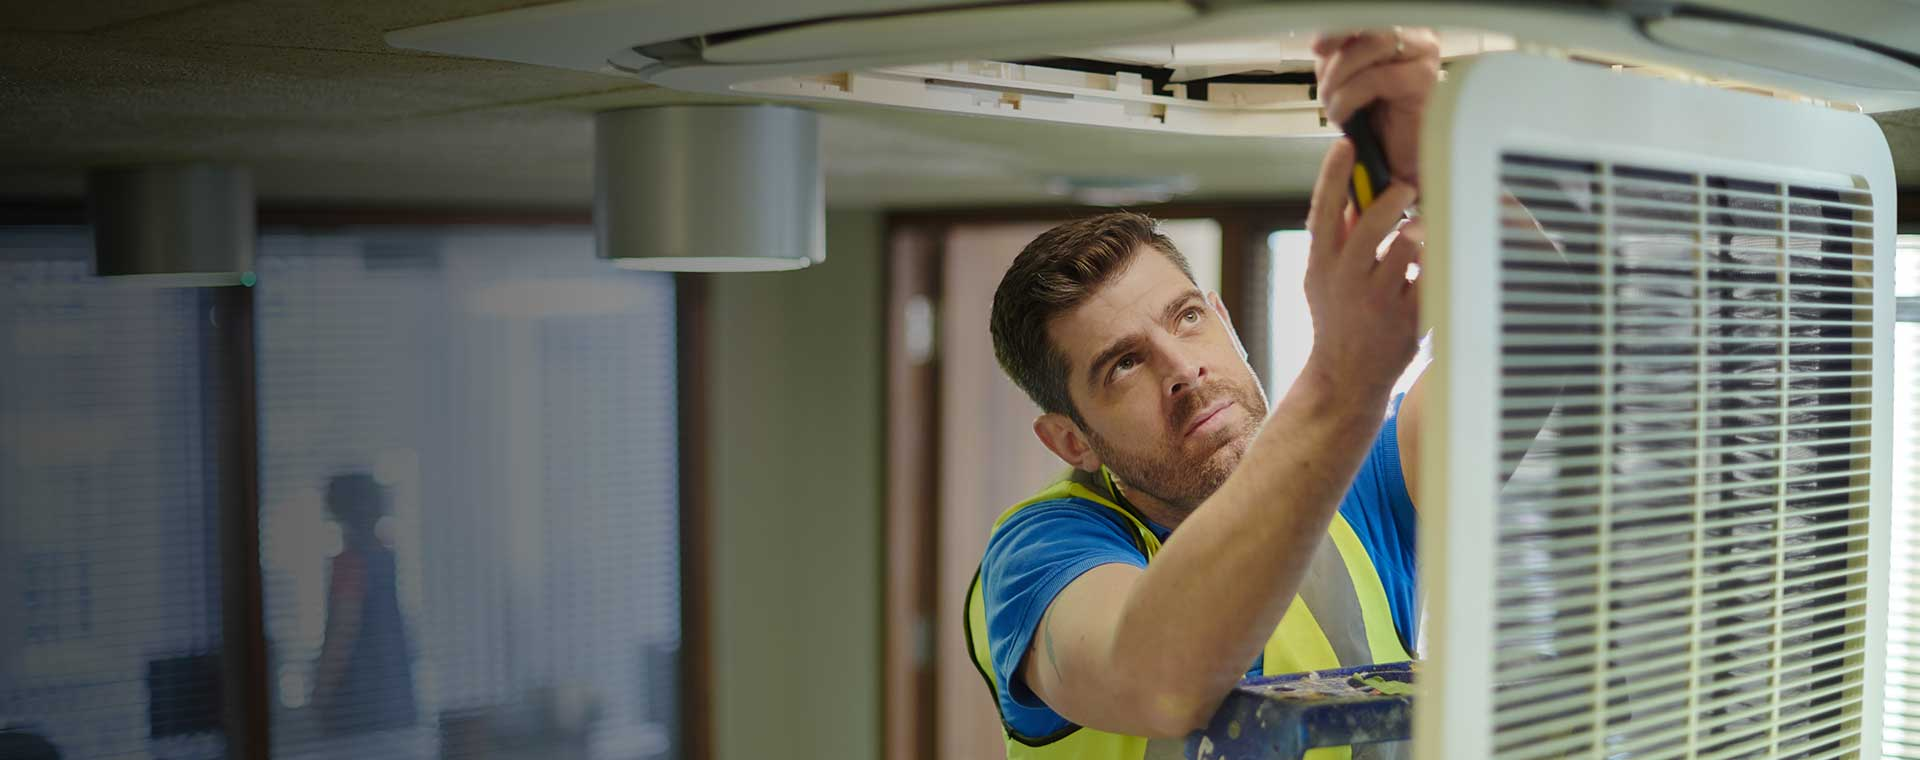 Electrical Services for Home Business and Industry Adelaide